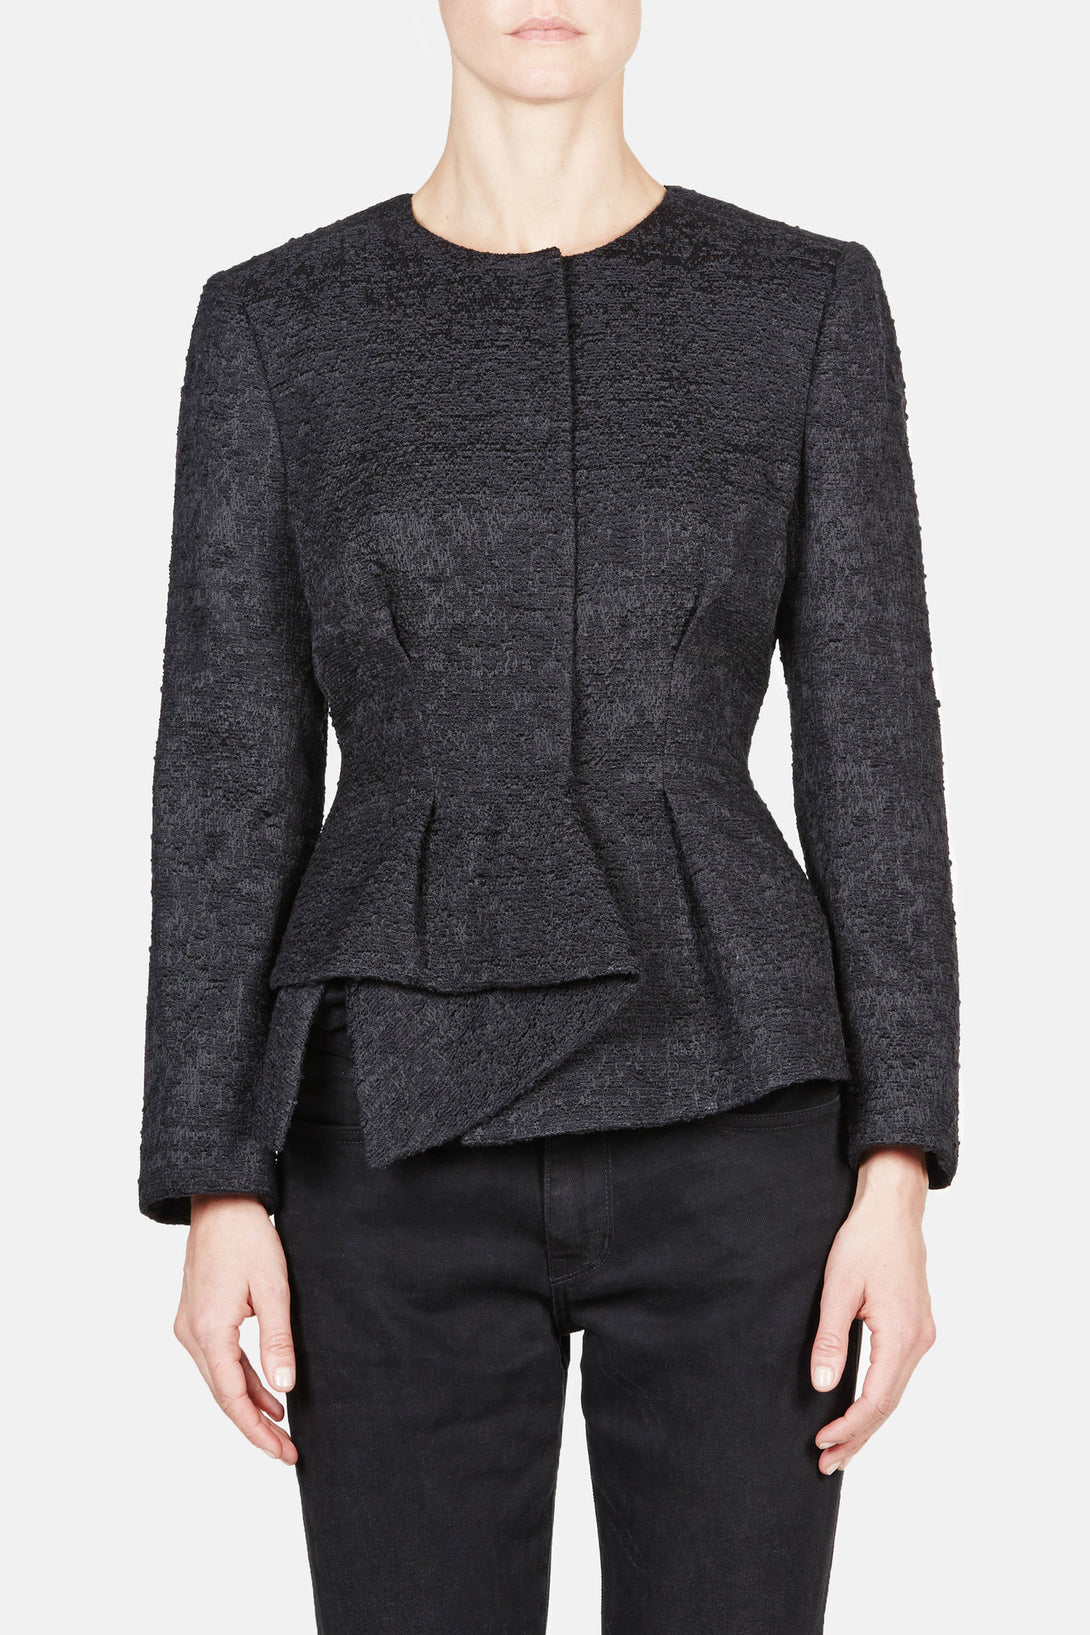 Peplum Jacket - Black